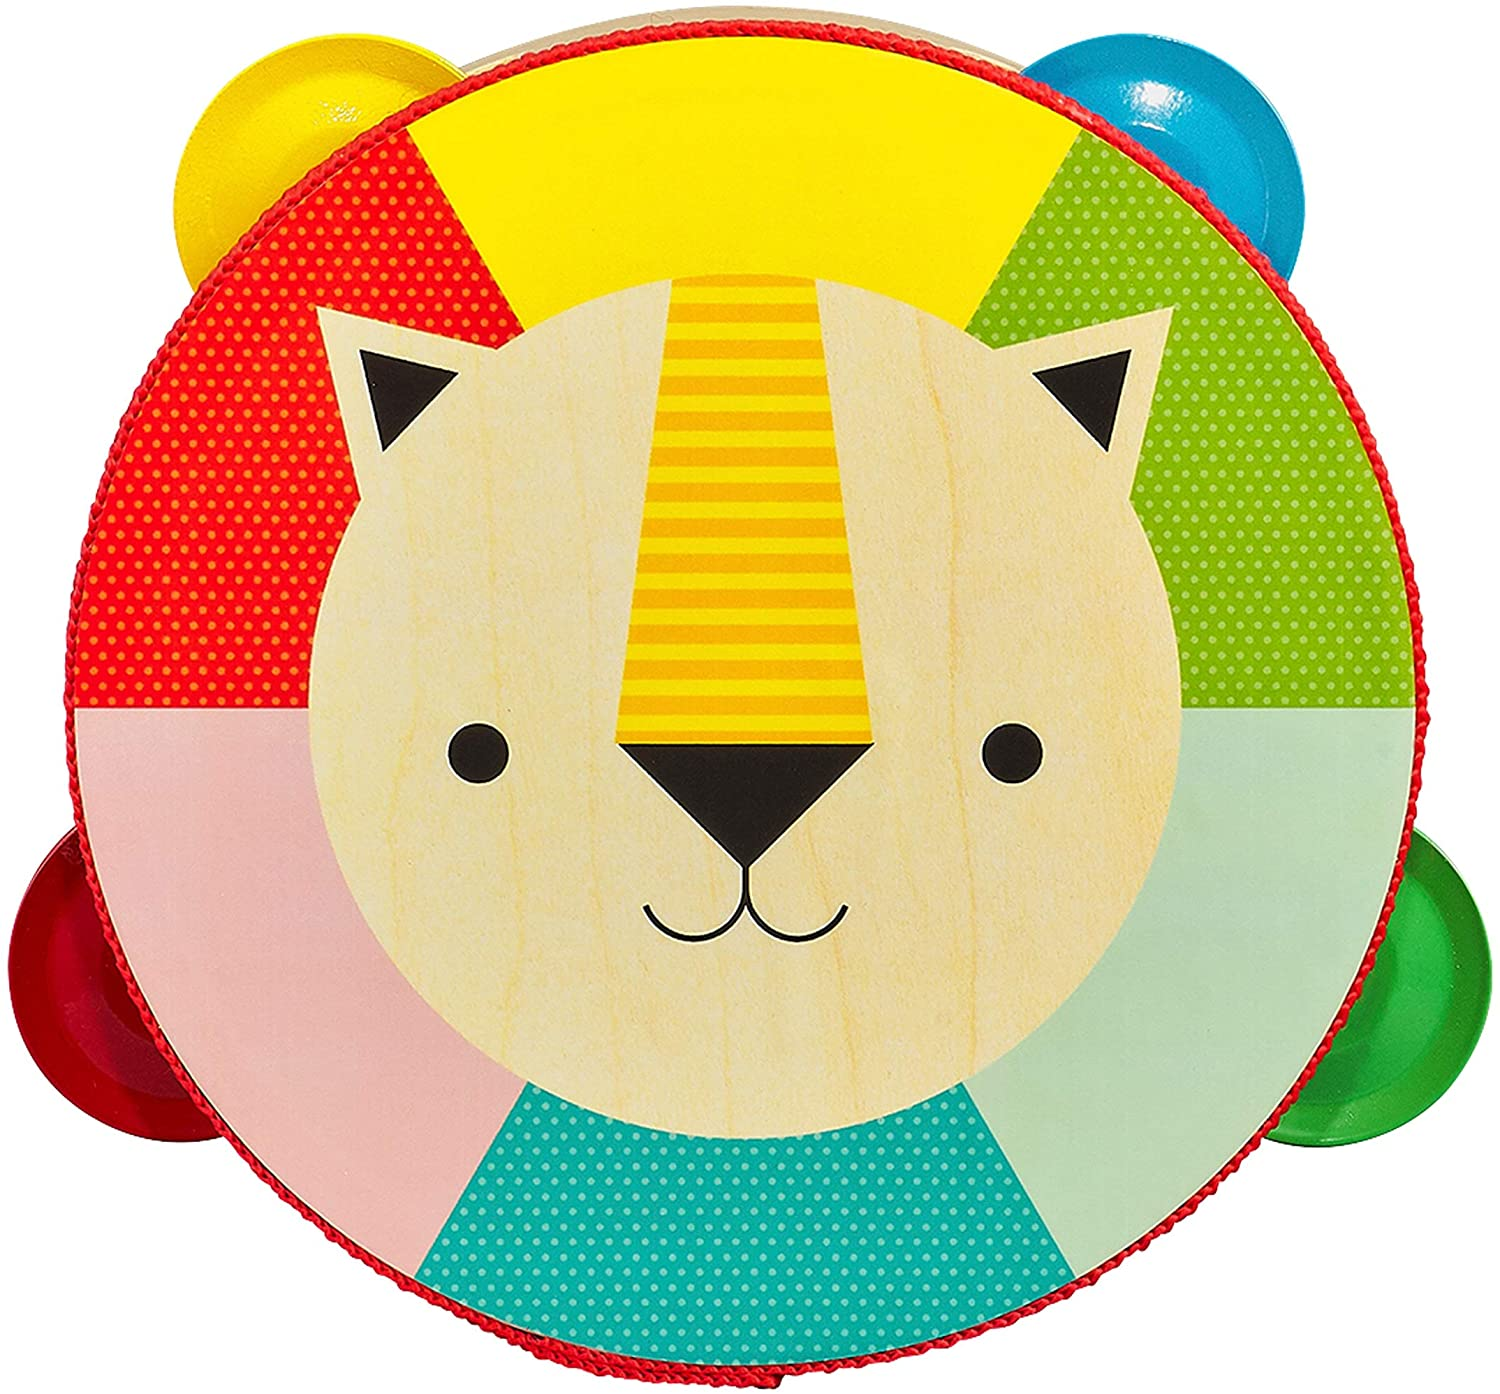 A rainbow tambourine with a design of a lion's head in the middle on a white background.